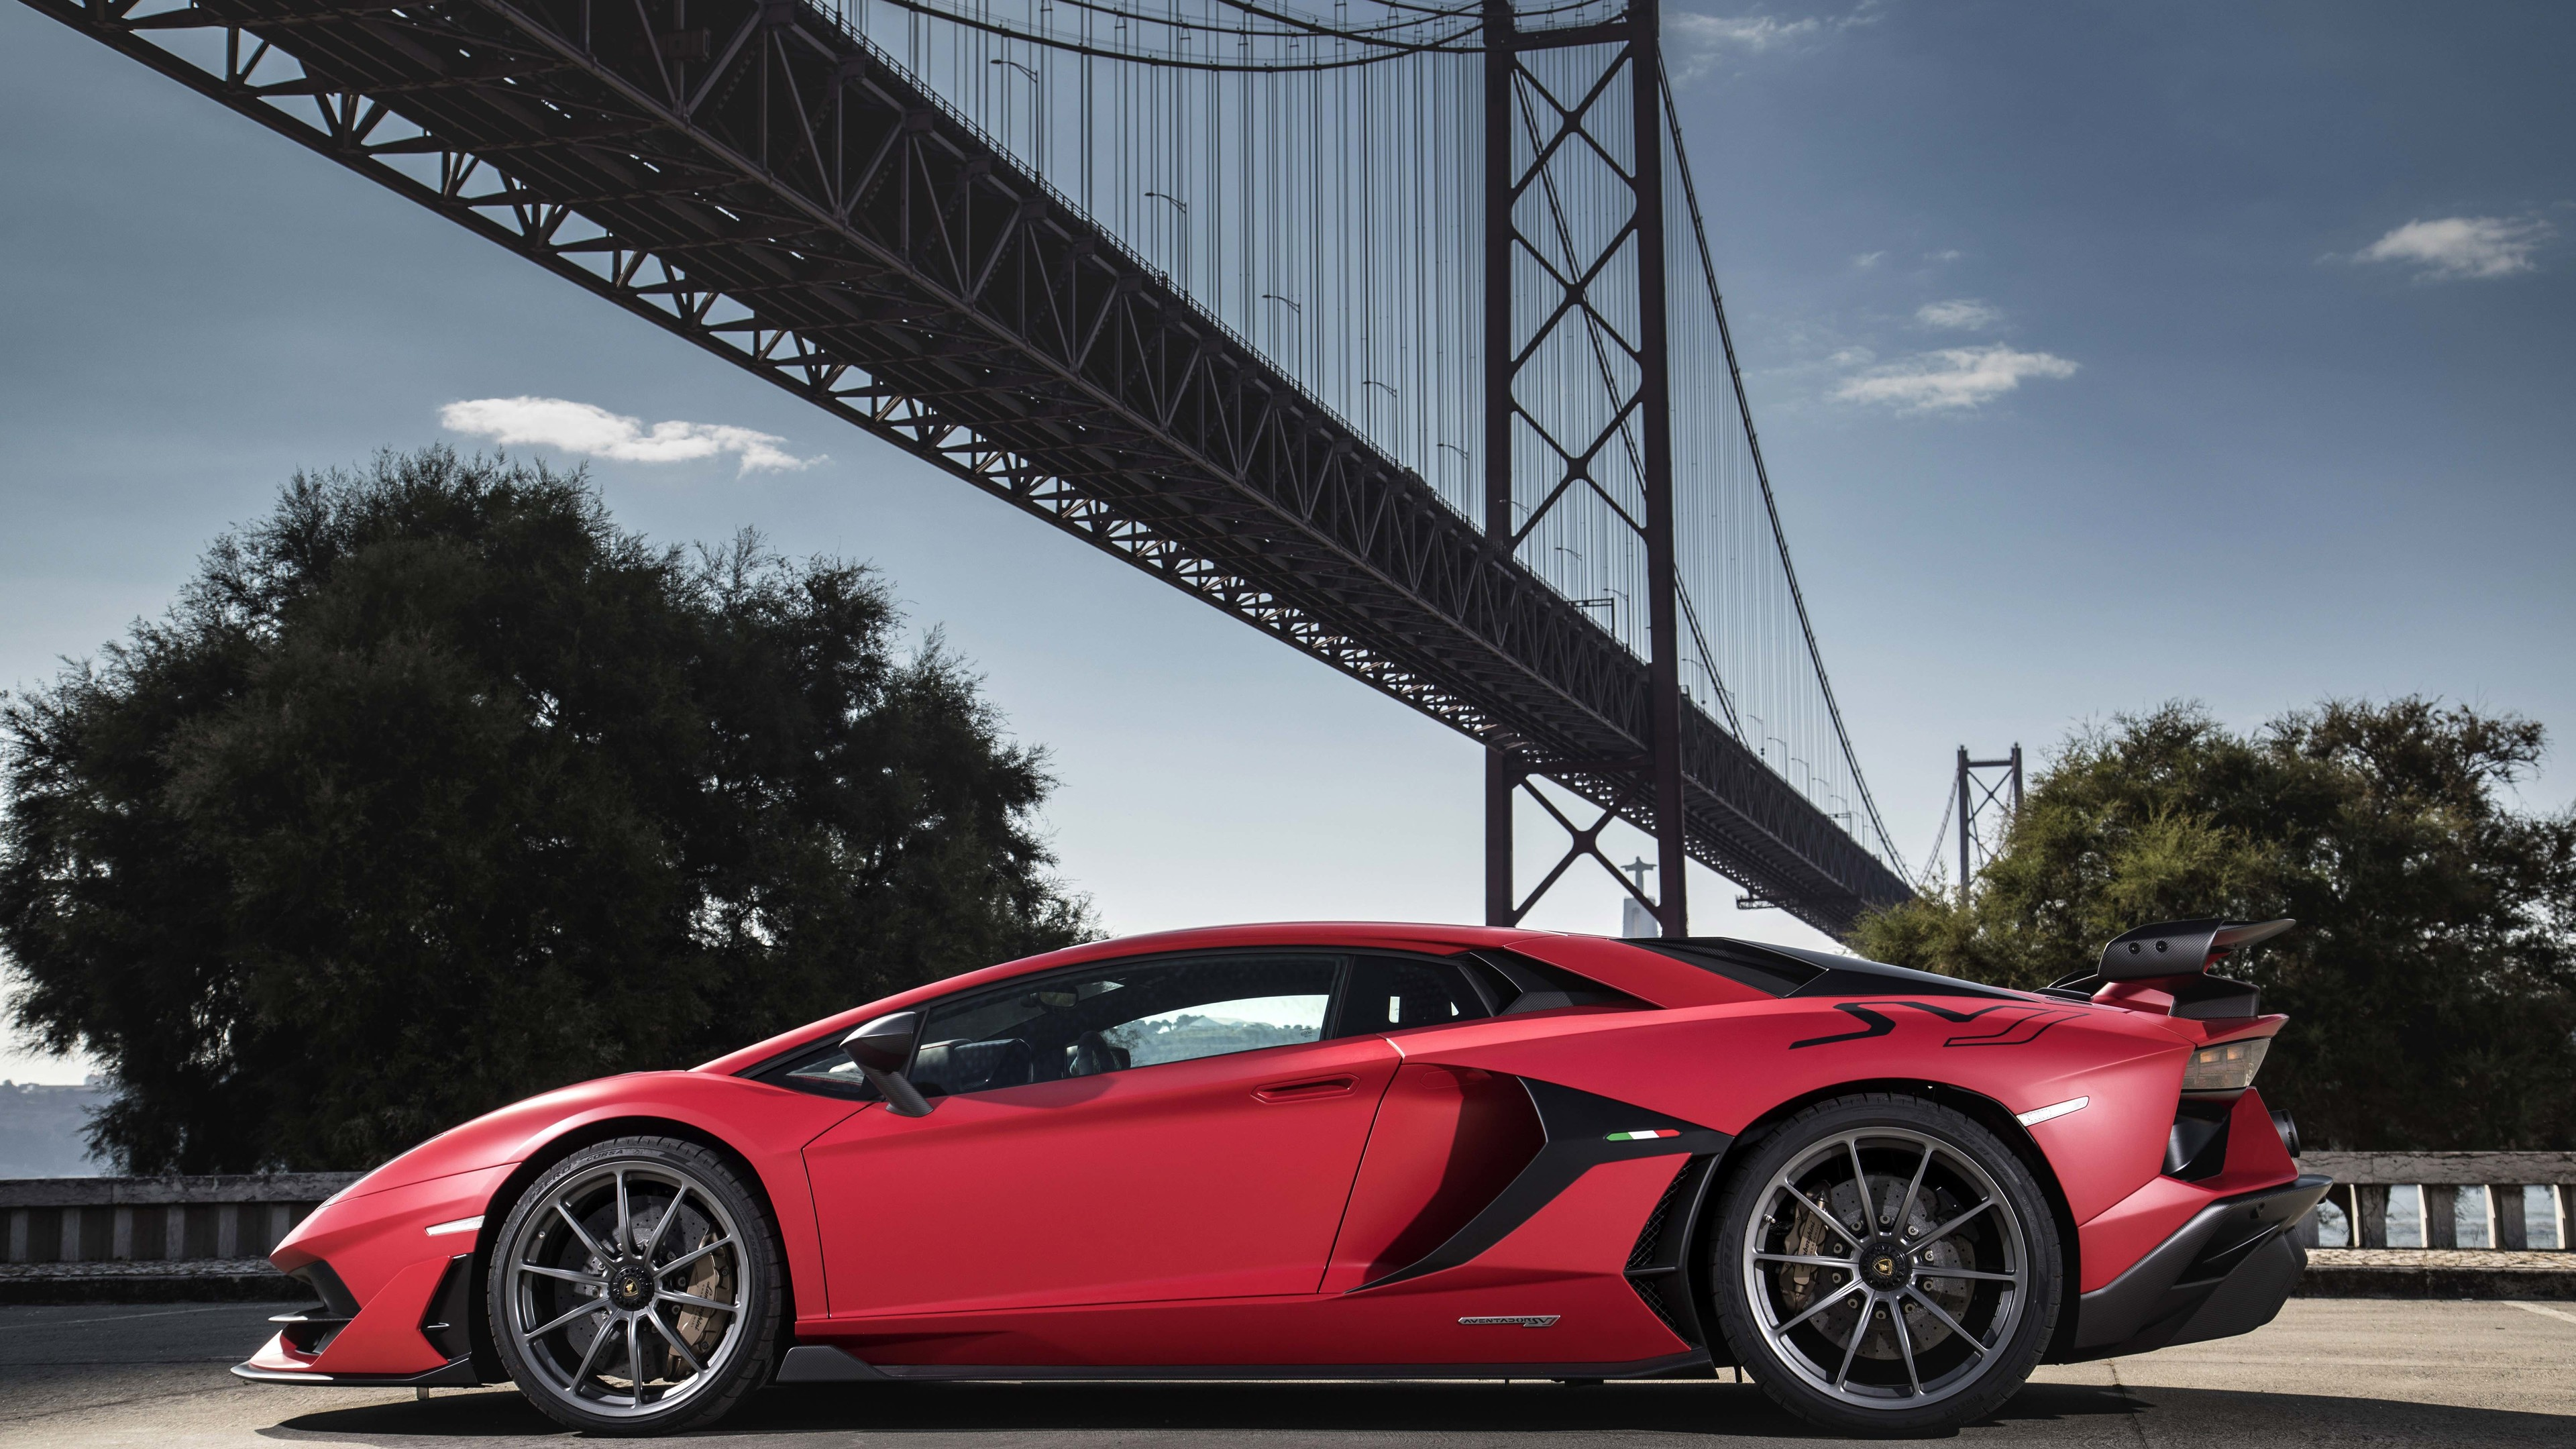 2018 lamborghini aventardor svj 5k 1539792940 - 2018 Lamborghini Aventardor SVJ 5k - lamborghini wallpapers, lamborghini aventador wallpapers, lamborghini aventador svj wallpapers, hd-wallpapers, cars wallpapers, 5k wallpapers, 4k-wallpapers, 2018 cars wallpapers